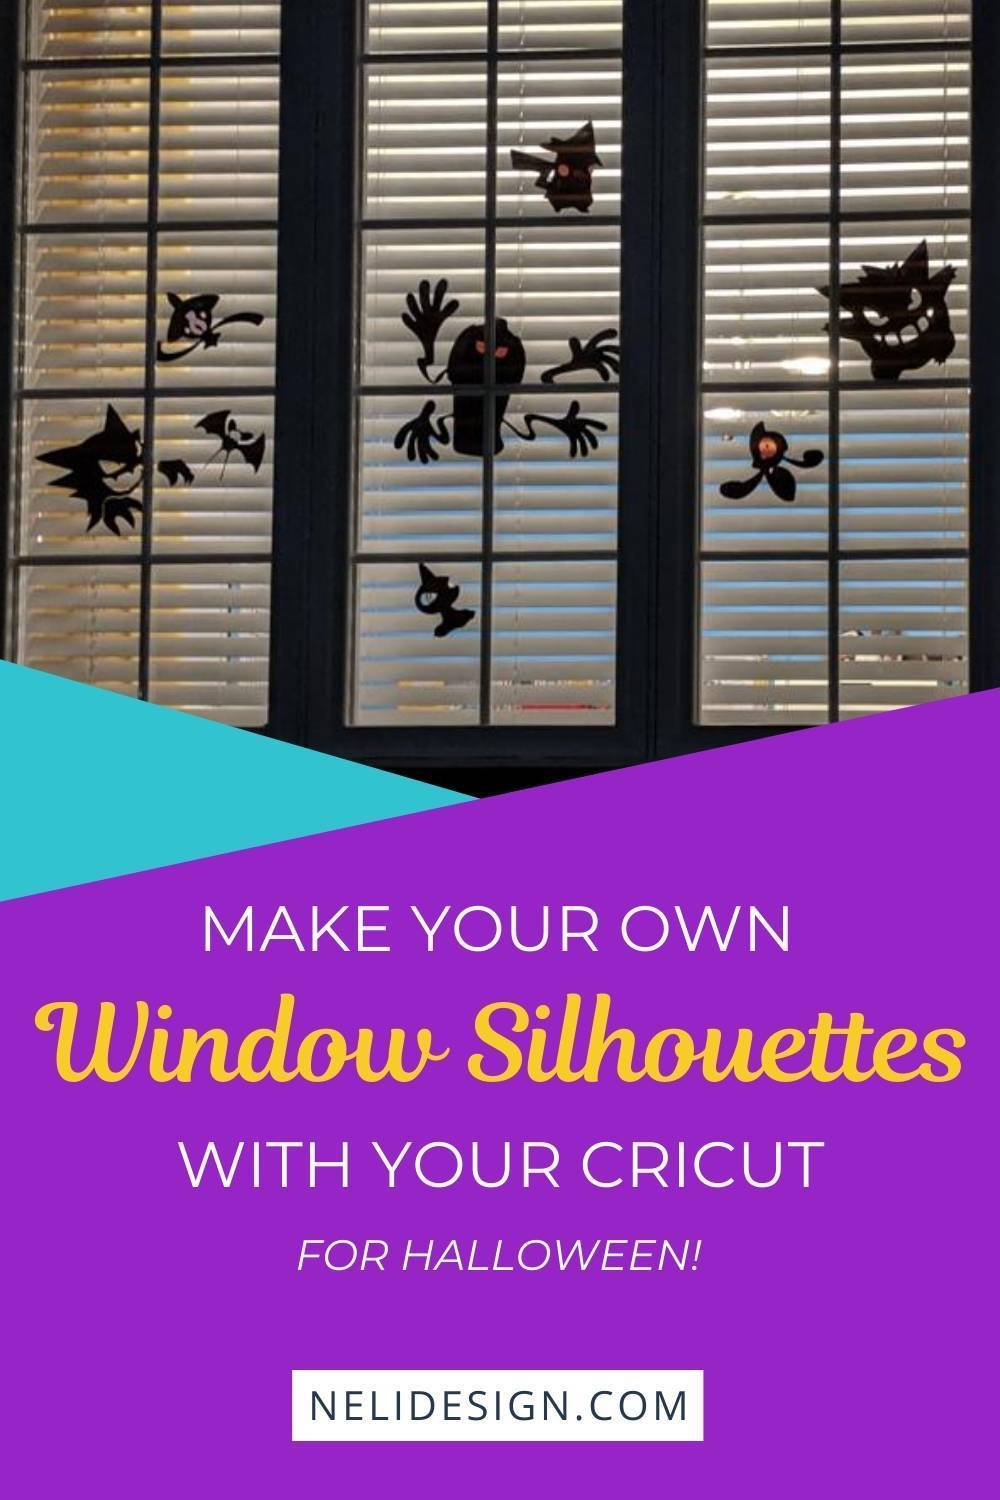 Make your own window silhouettes with your Cricut